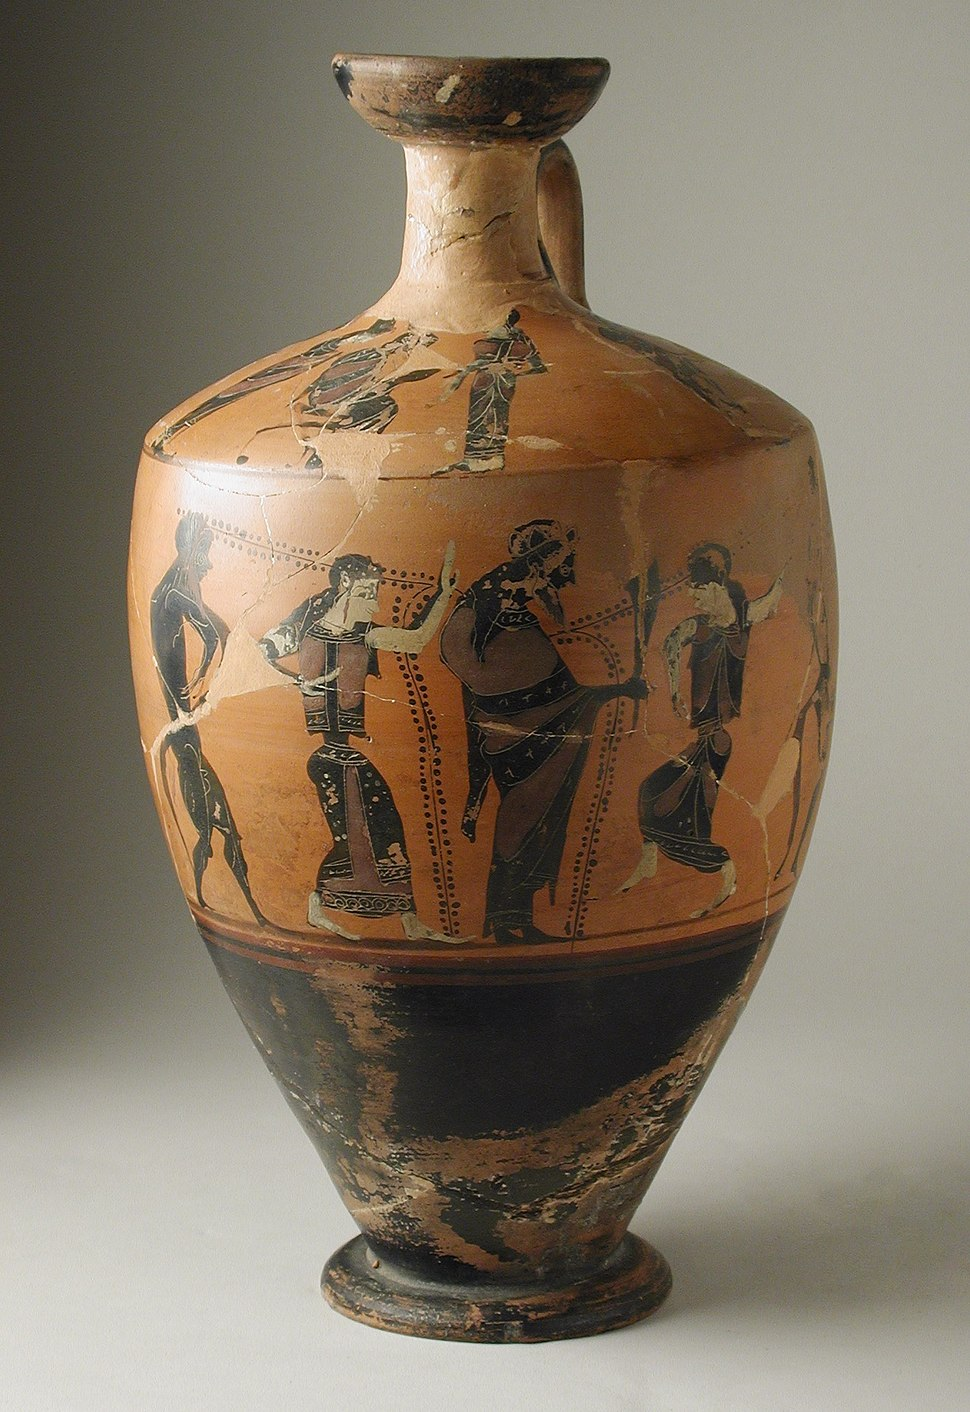 Attic Black-Figure Lekythos with (Body) Dionysos between Maenads and Satyrs and (Shoulder) a Seated Man between Women and Men LACMA 50.9.43